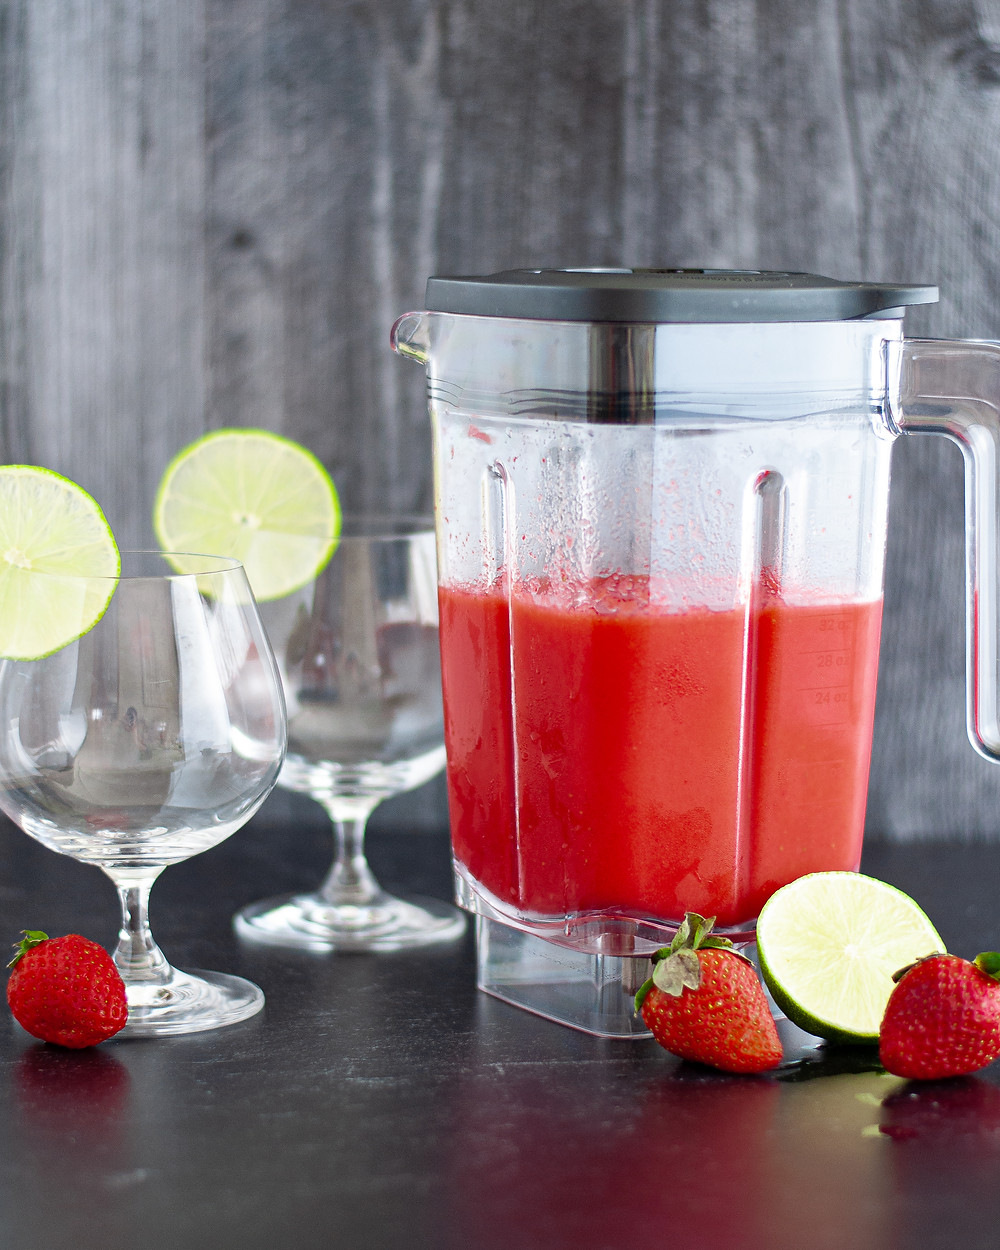 Process shot of this strawberry daiquiri being made; the frozen daiquiri is still in the blender ready to be served